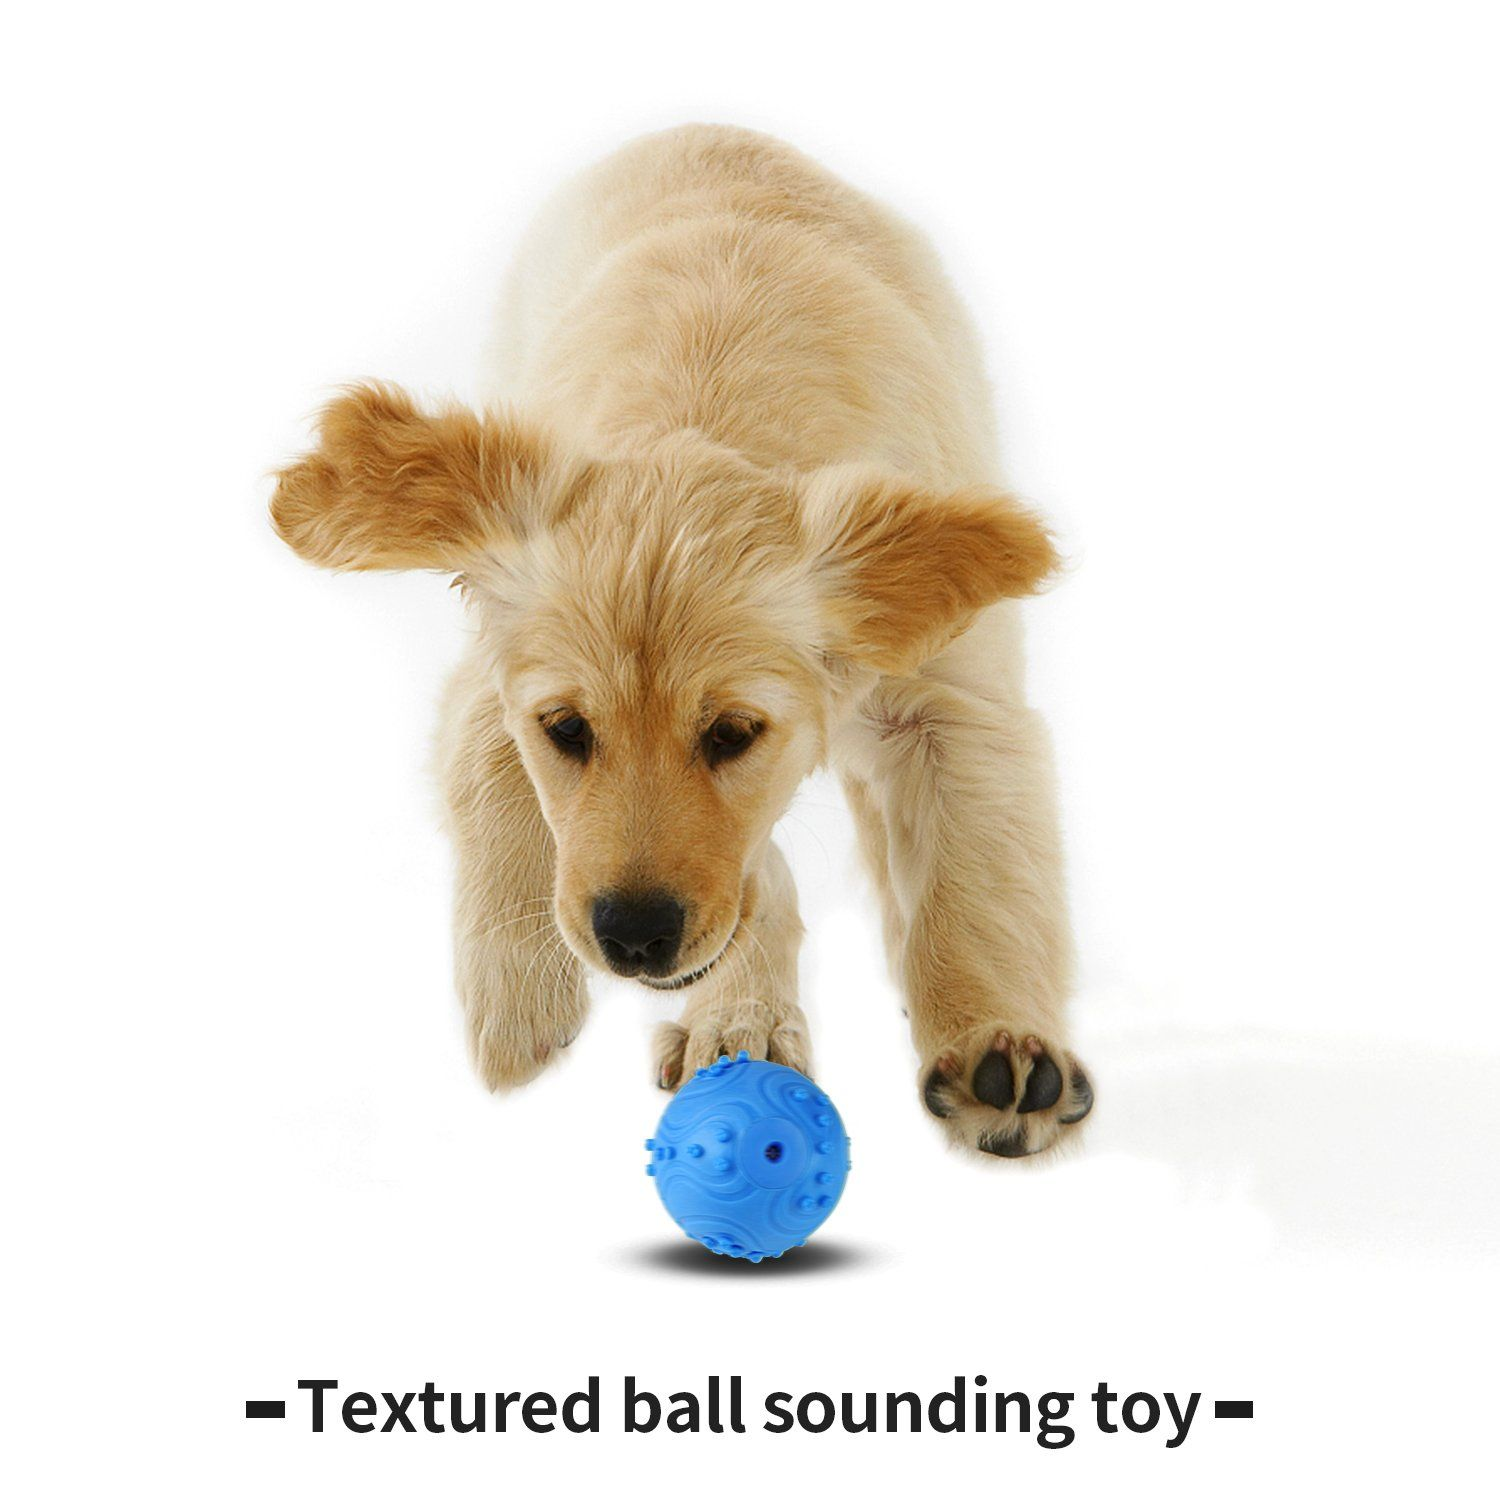 Airsspu Dog Toys Balls Iq Treat Ball Rubber Dog Chew Toy Dog Toys Best For Puppy And Small Medium Dogs Increases Iq And Men Dog Toy Ball Dog Toys Medium Dogs